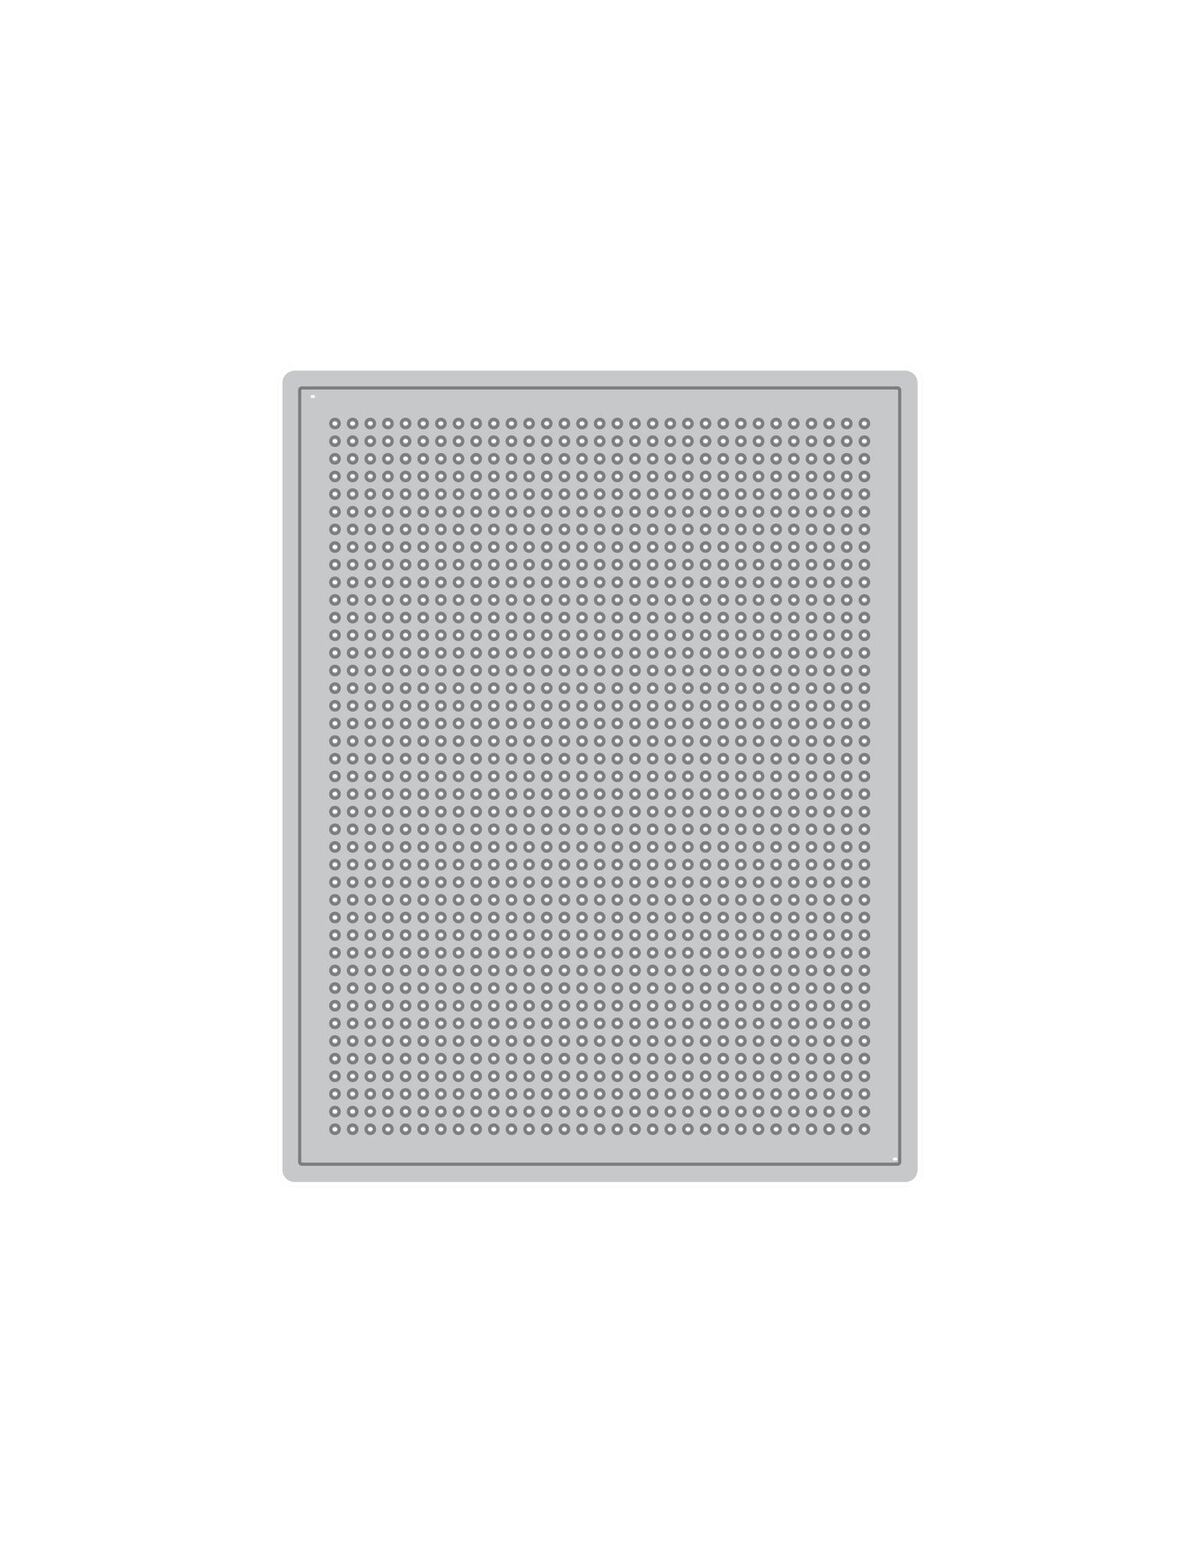 https://altenew.com/products/pegboard-canvas-cover-die